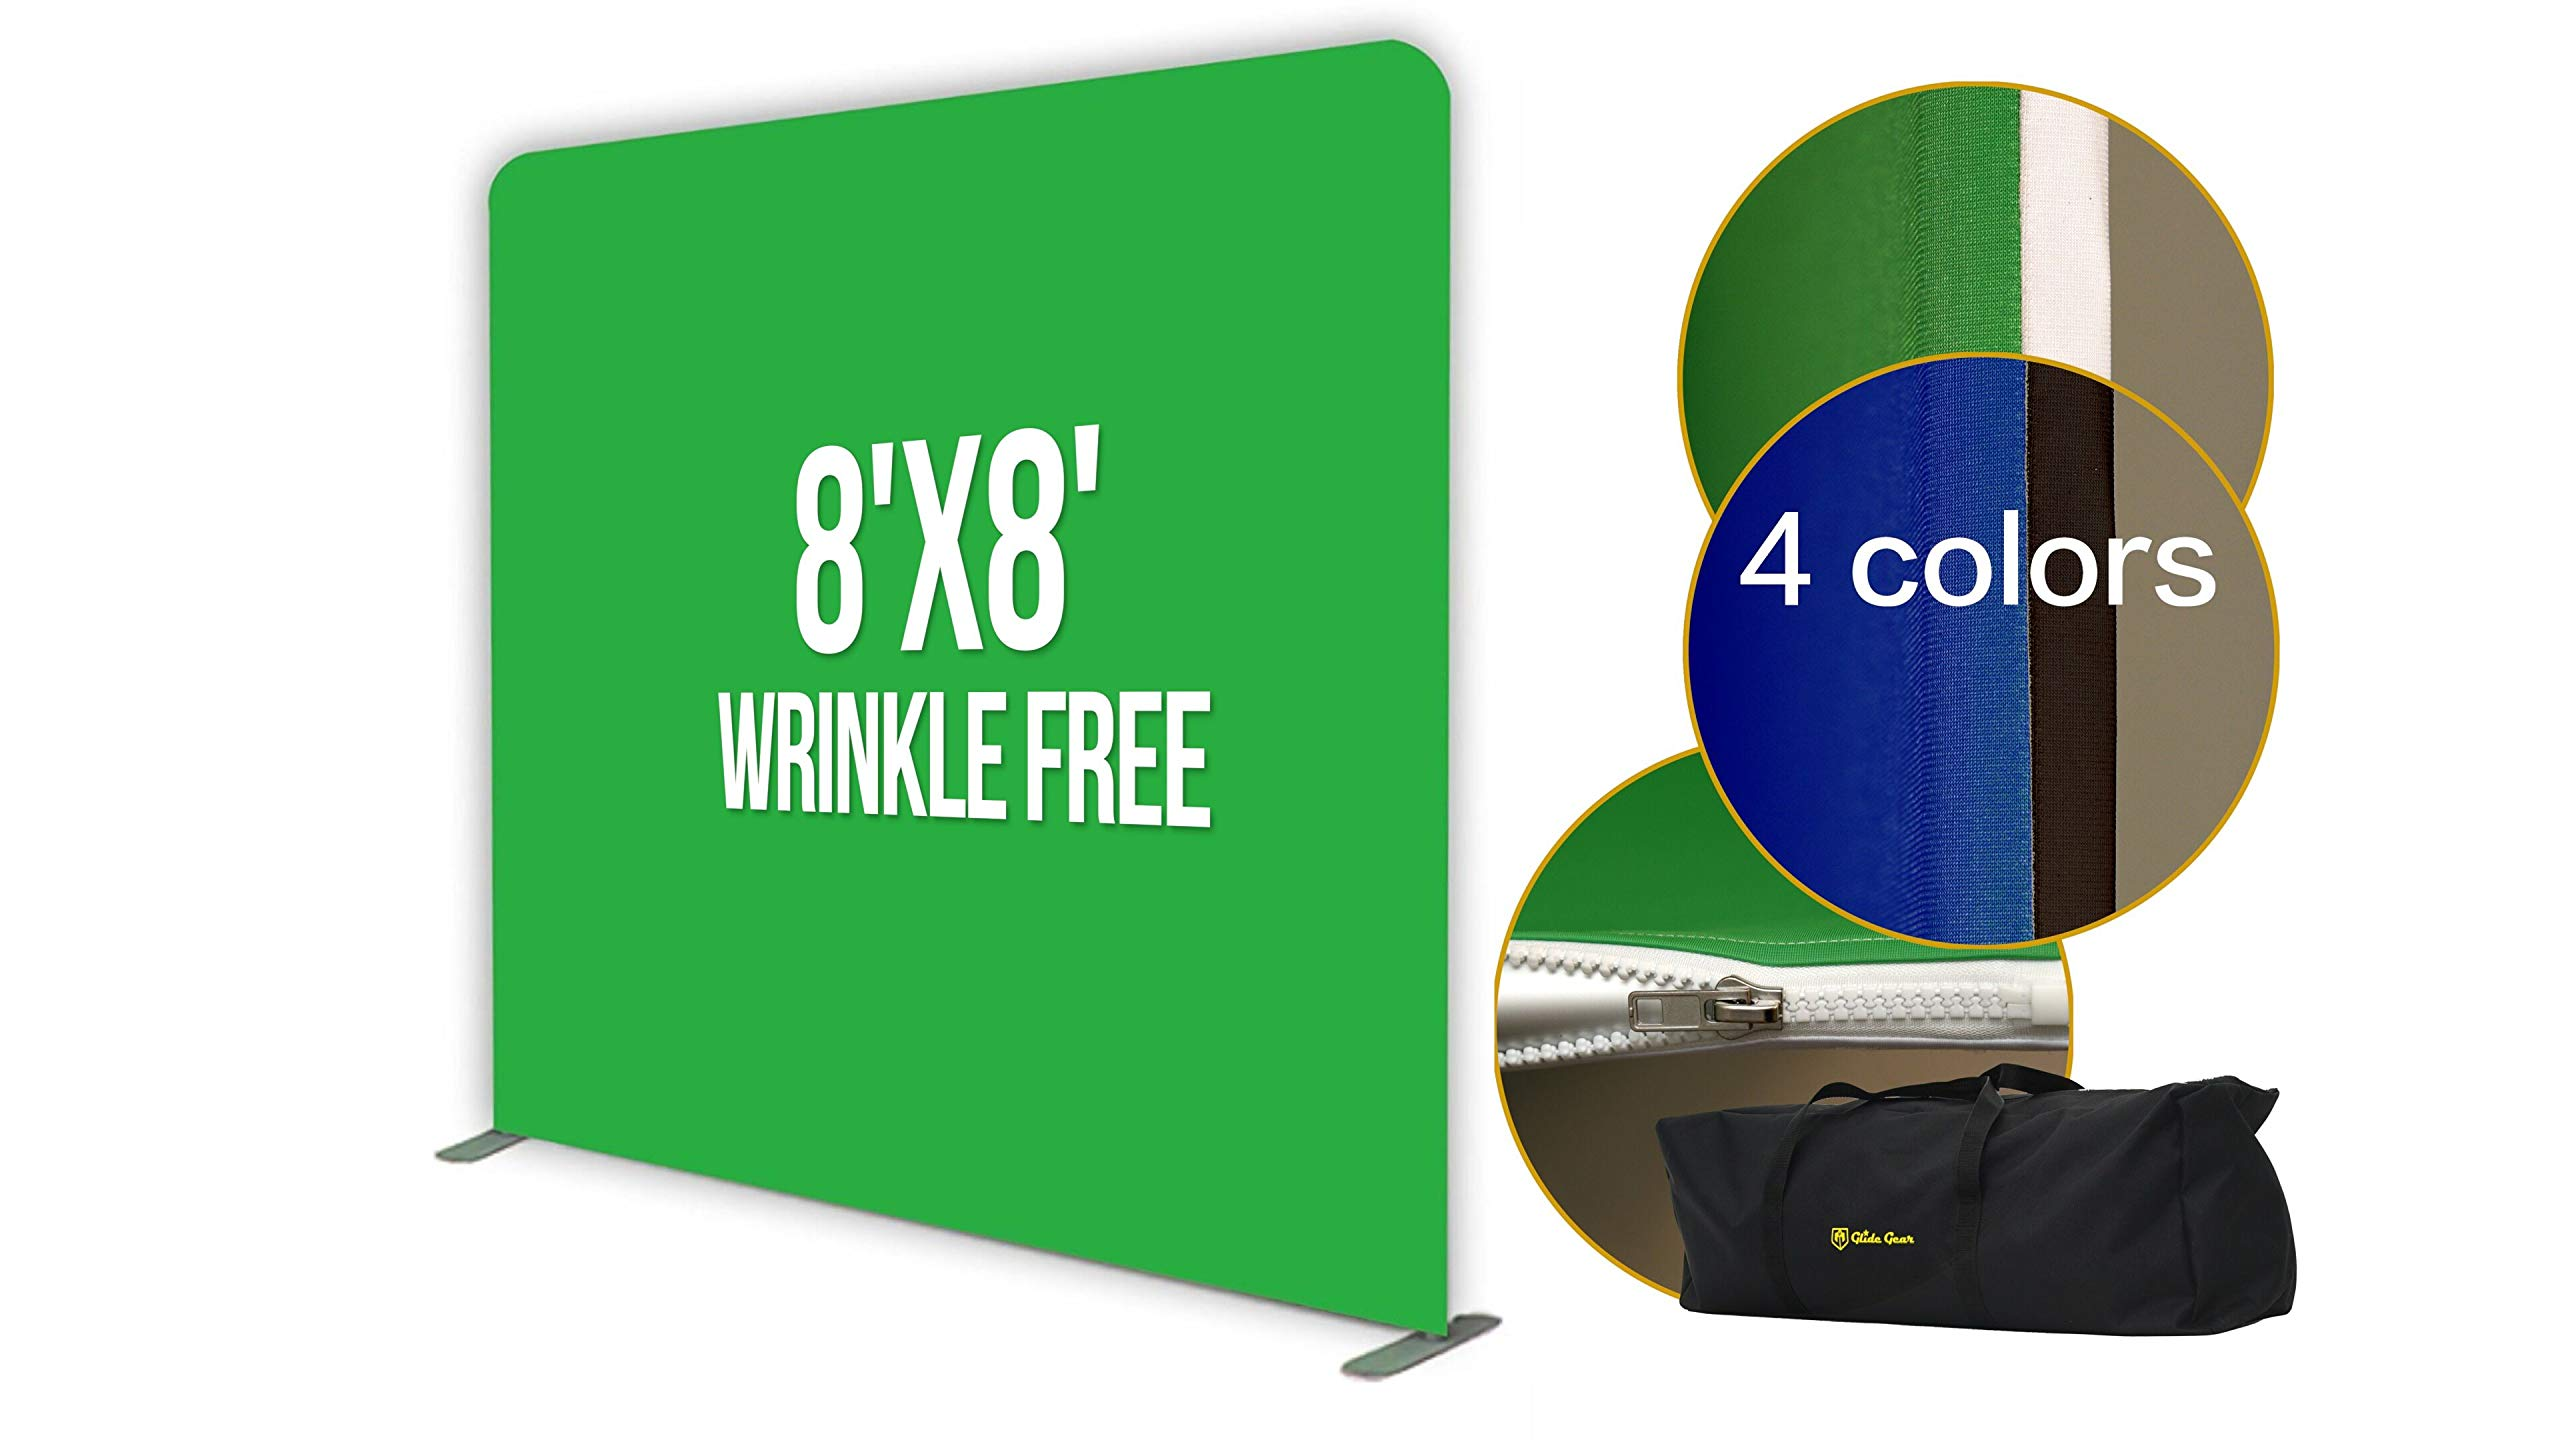 Glide Gear 8x8 Gaming Photography Video Green Screen Wrinkle Free Backdrop 4X Colors: Black/Blue/Green Chromakey/White with Collapsible Stand by Glide Gear